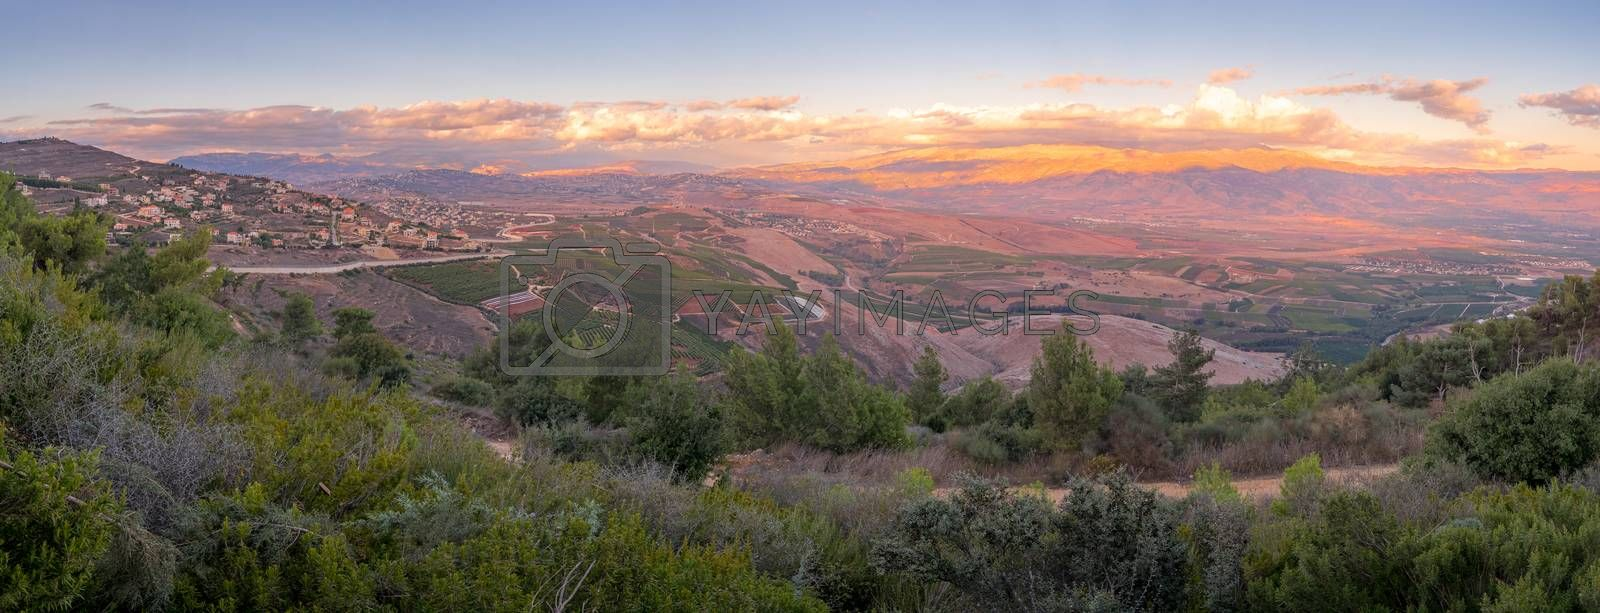 Panoramic sunset view of landscape at the border between northern Israel and Lebanon